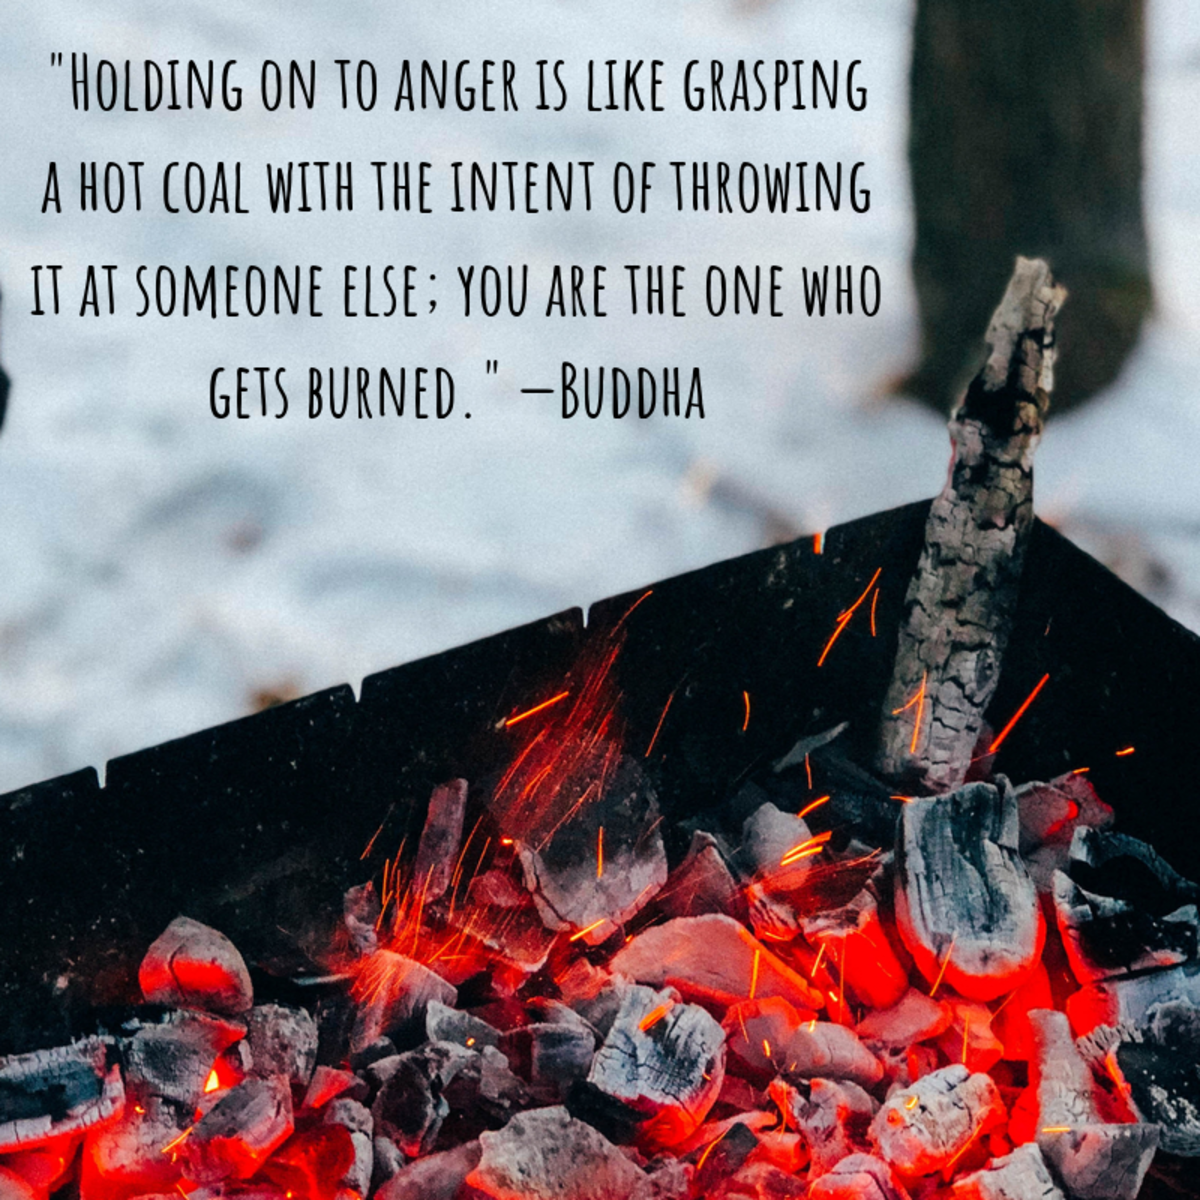 """""""Holding on to anger is like grasping a hot coal with the intent of throwing it at someone else; you are the one who gets burned."""" —Buddha"""